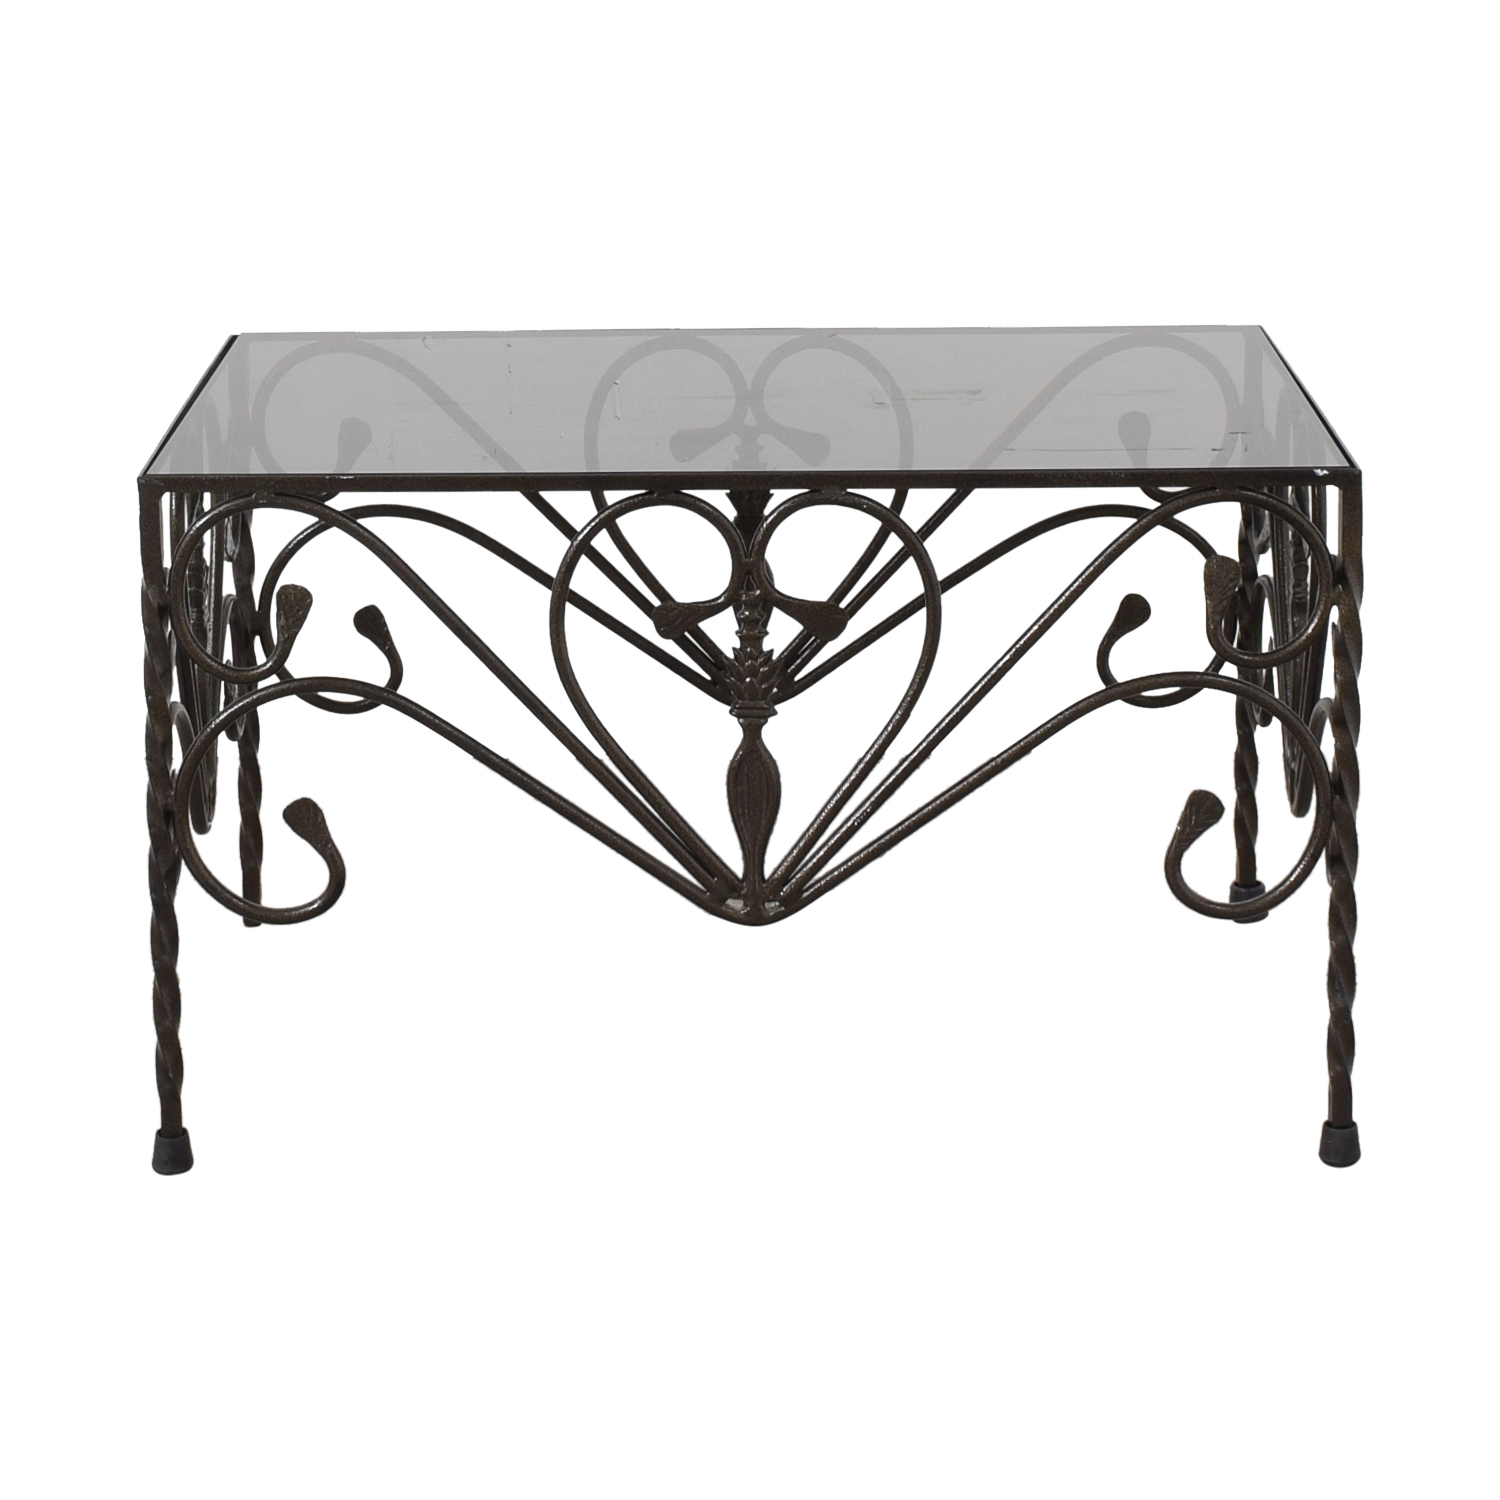 buy  Custom Wrought Iron Table online